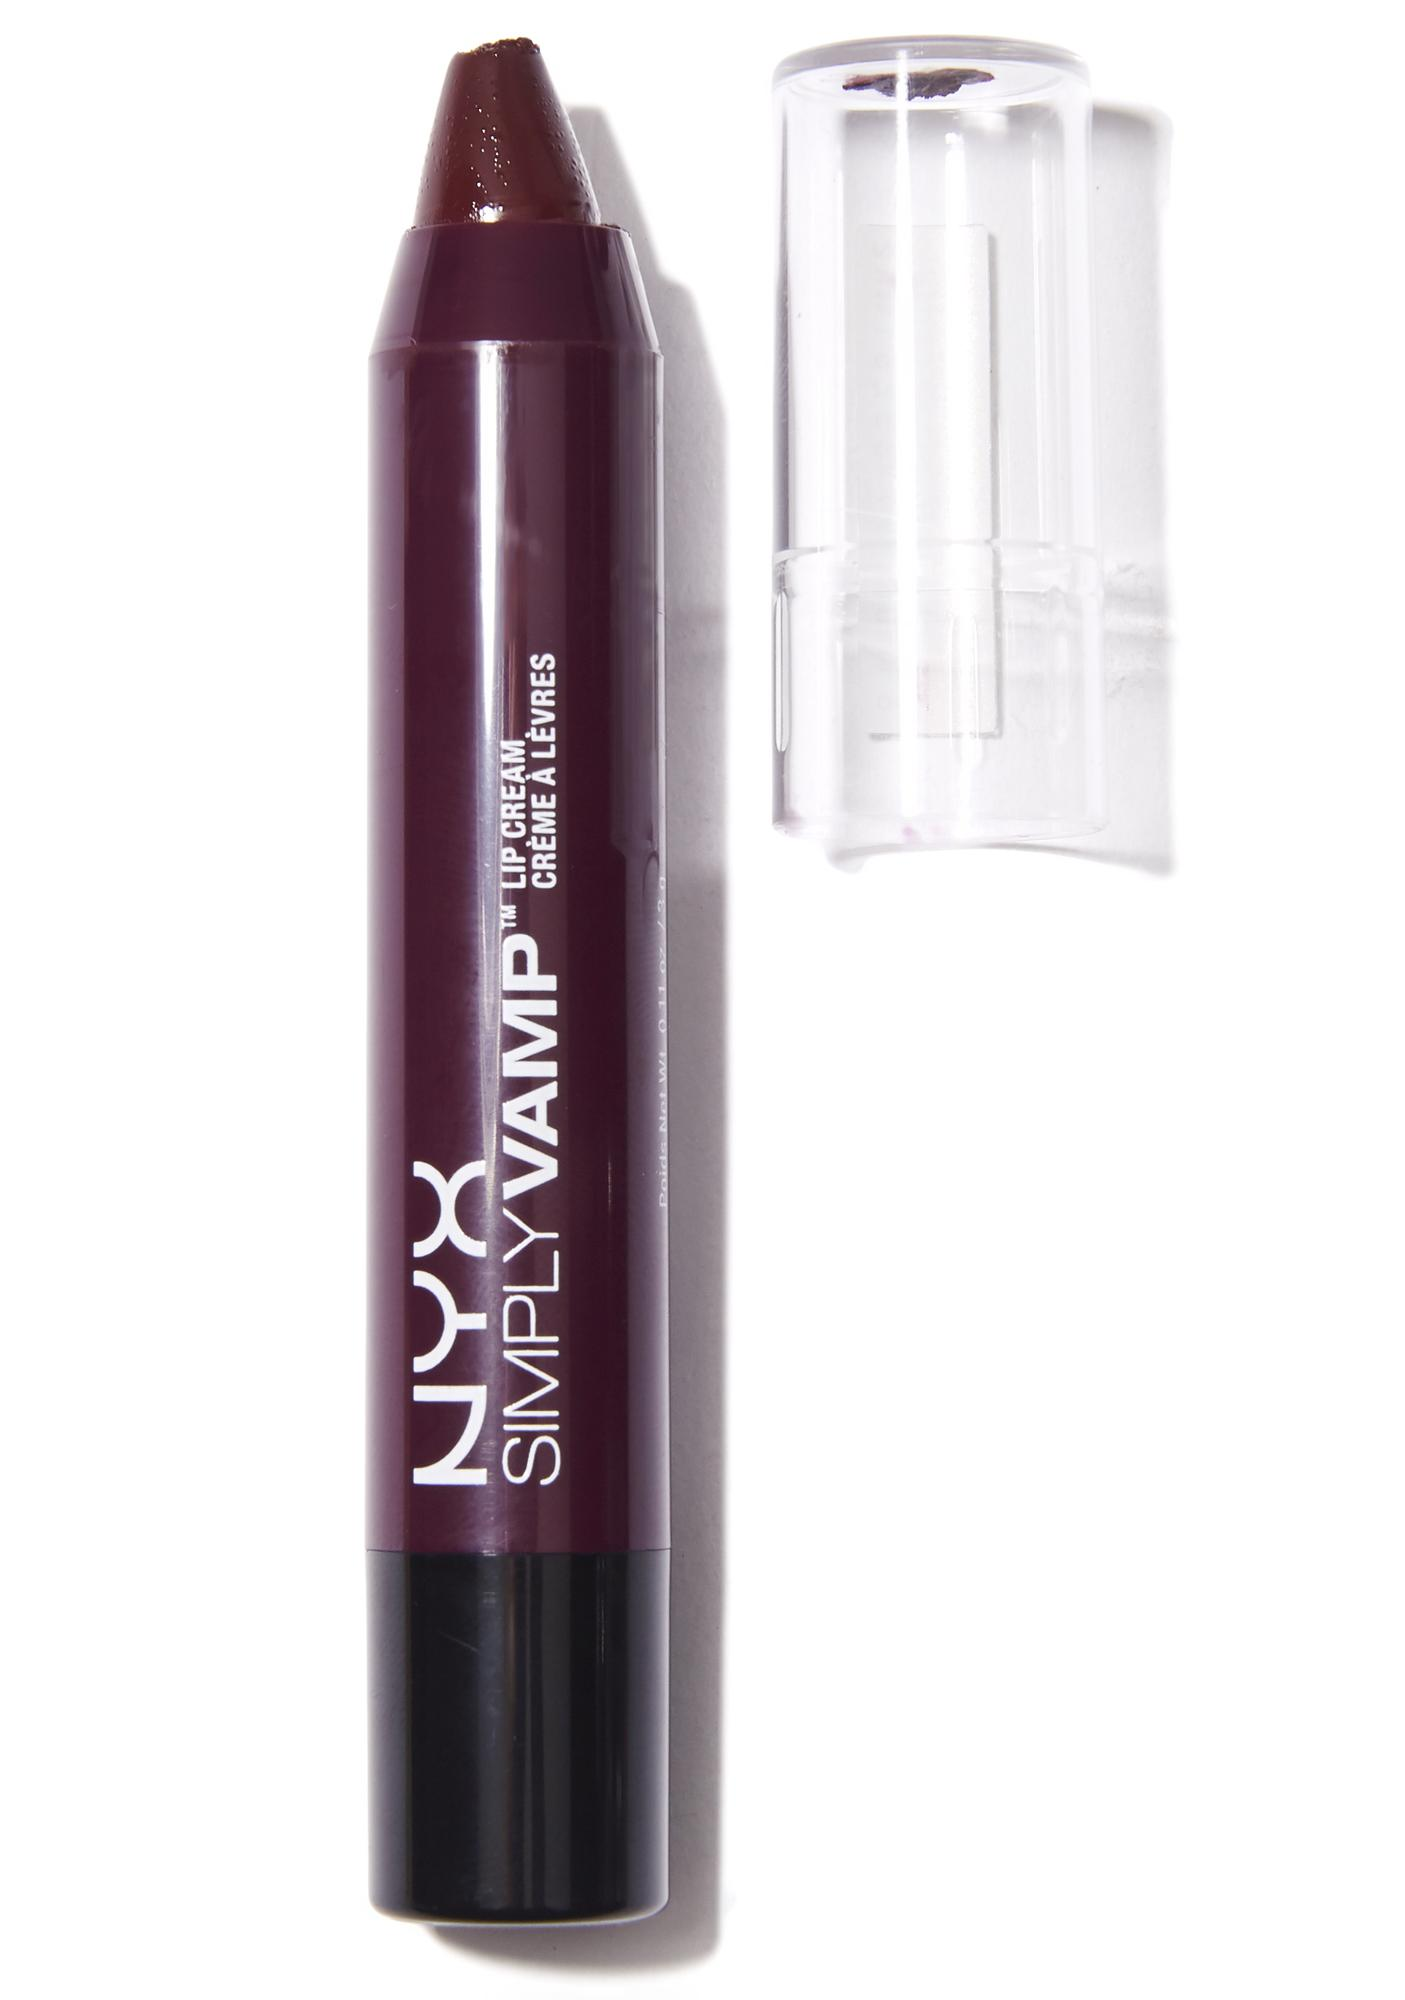 NYX Bewitching Simply Vamp Lip Cream